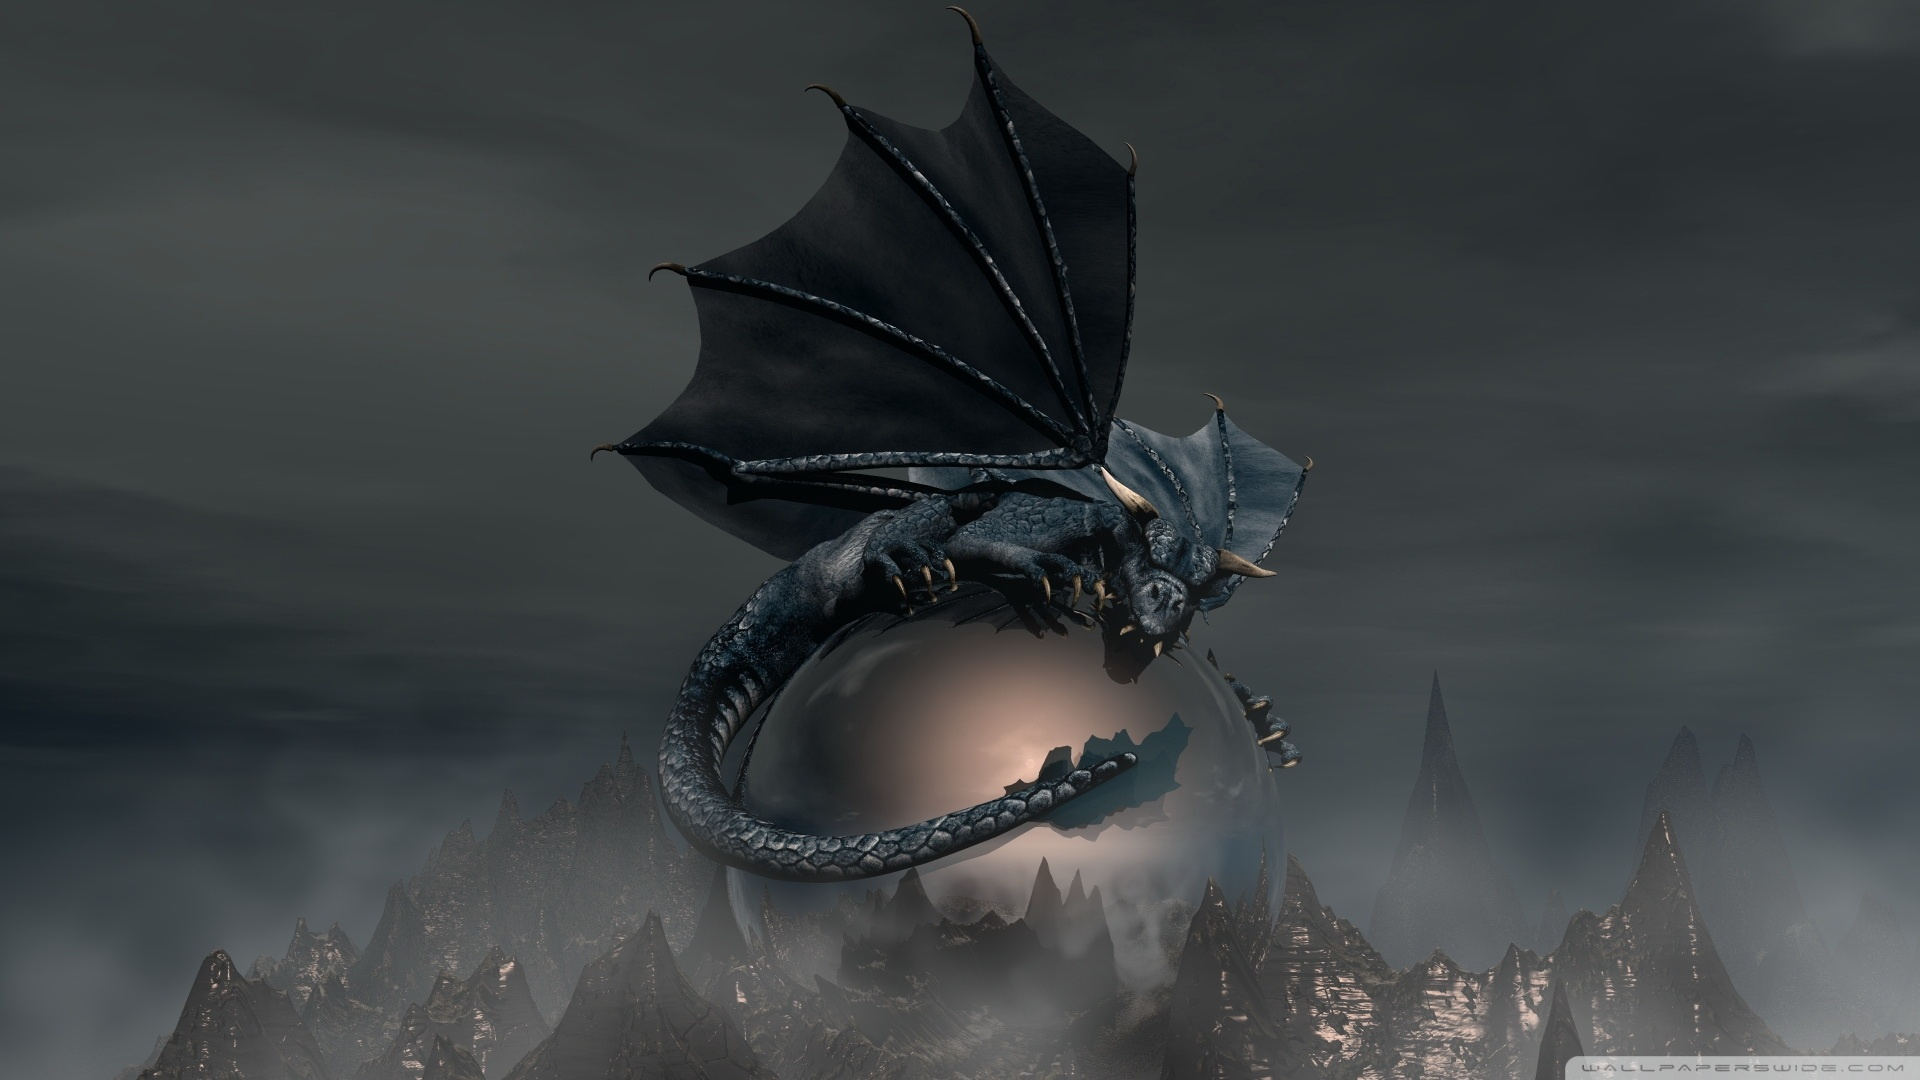 Black Dragon Wallpaper 1920x1080 Black Dragon 1920x1080